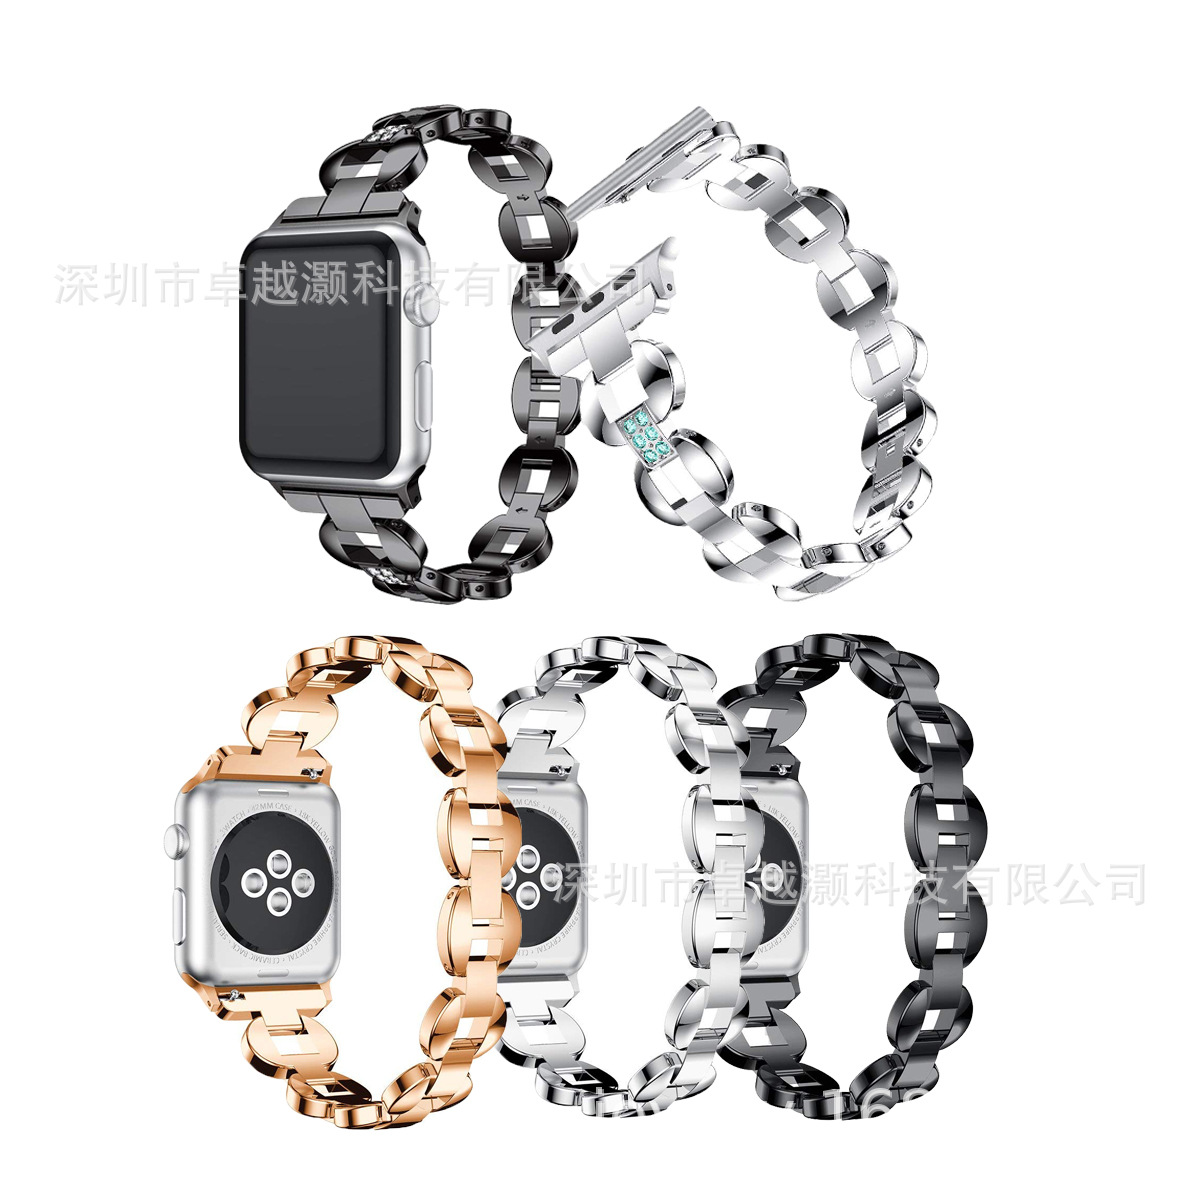 Suitable For Apple Smart Diamond Set Watch Band Apple Bucket Type With Diamond Watch Strap Manufacturers Direct Selling New Styl